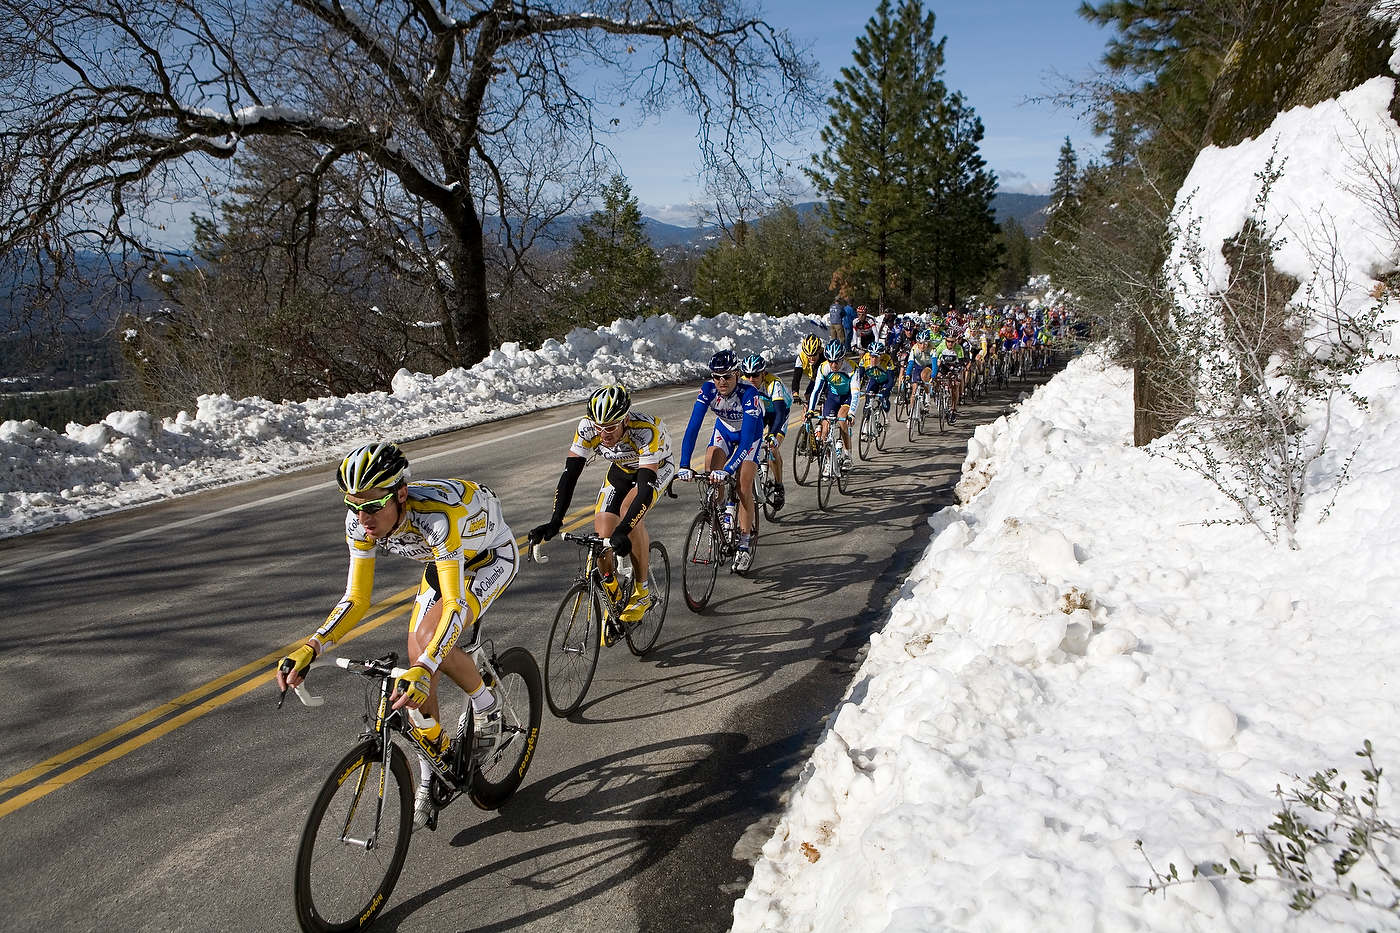 Tour of California bike race, Sierras Mountains.